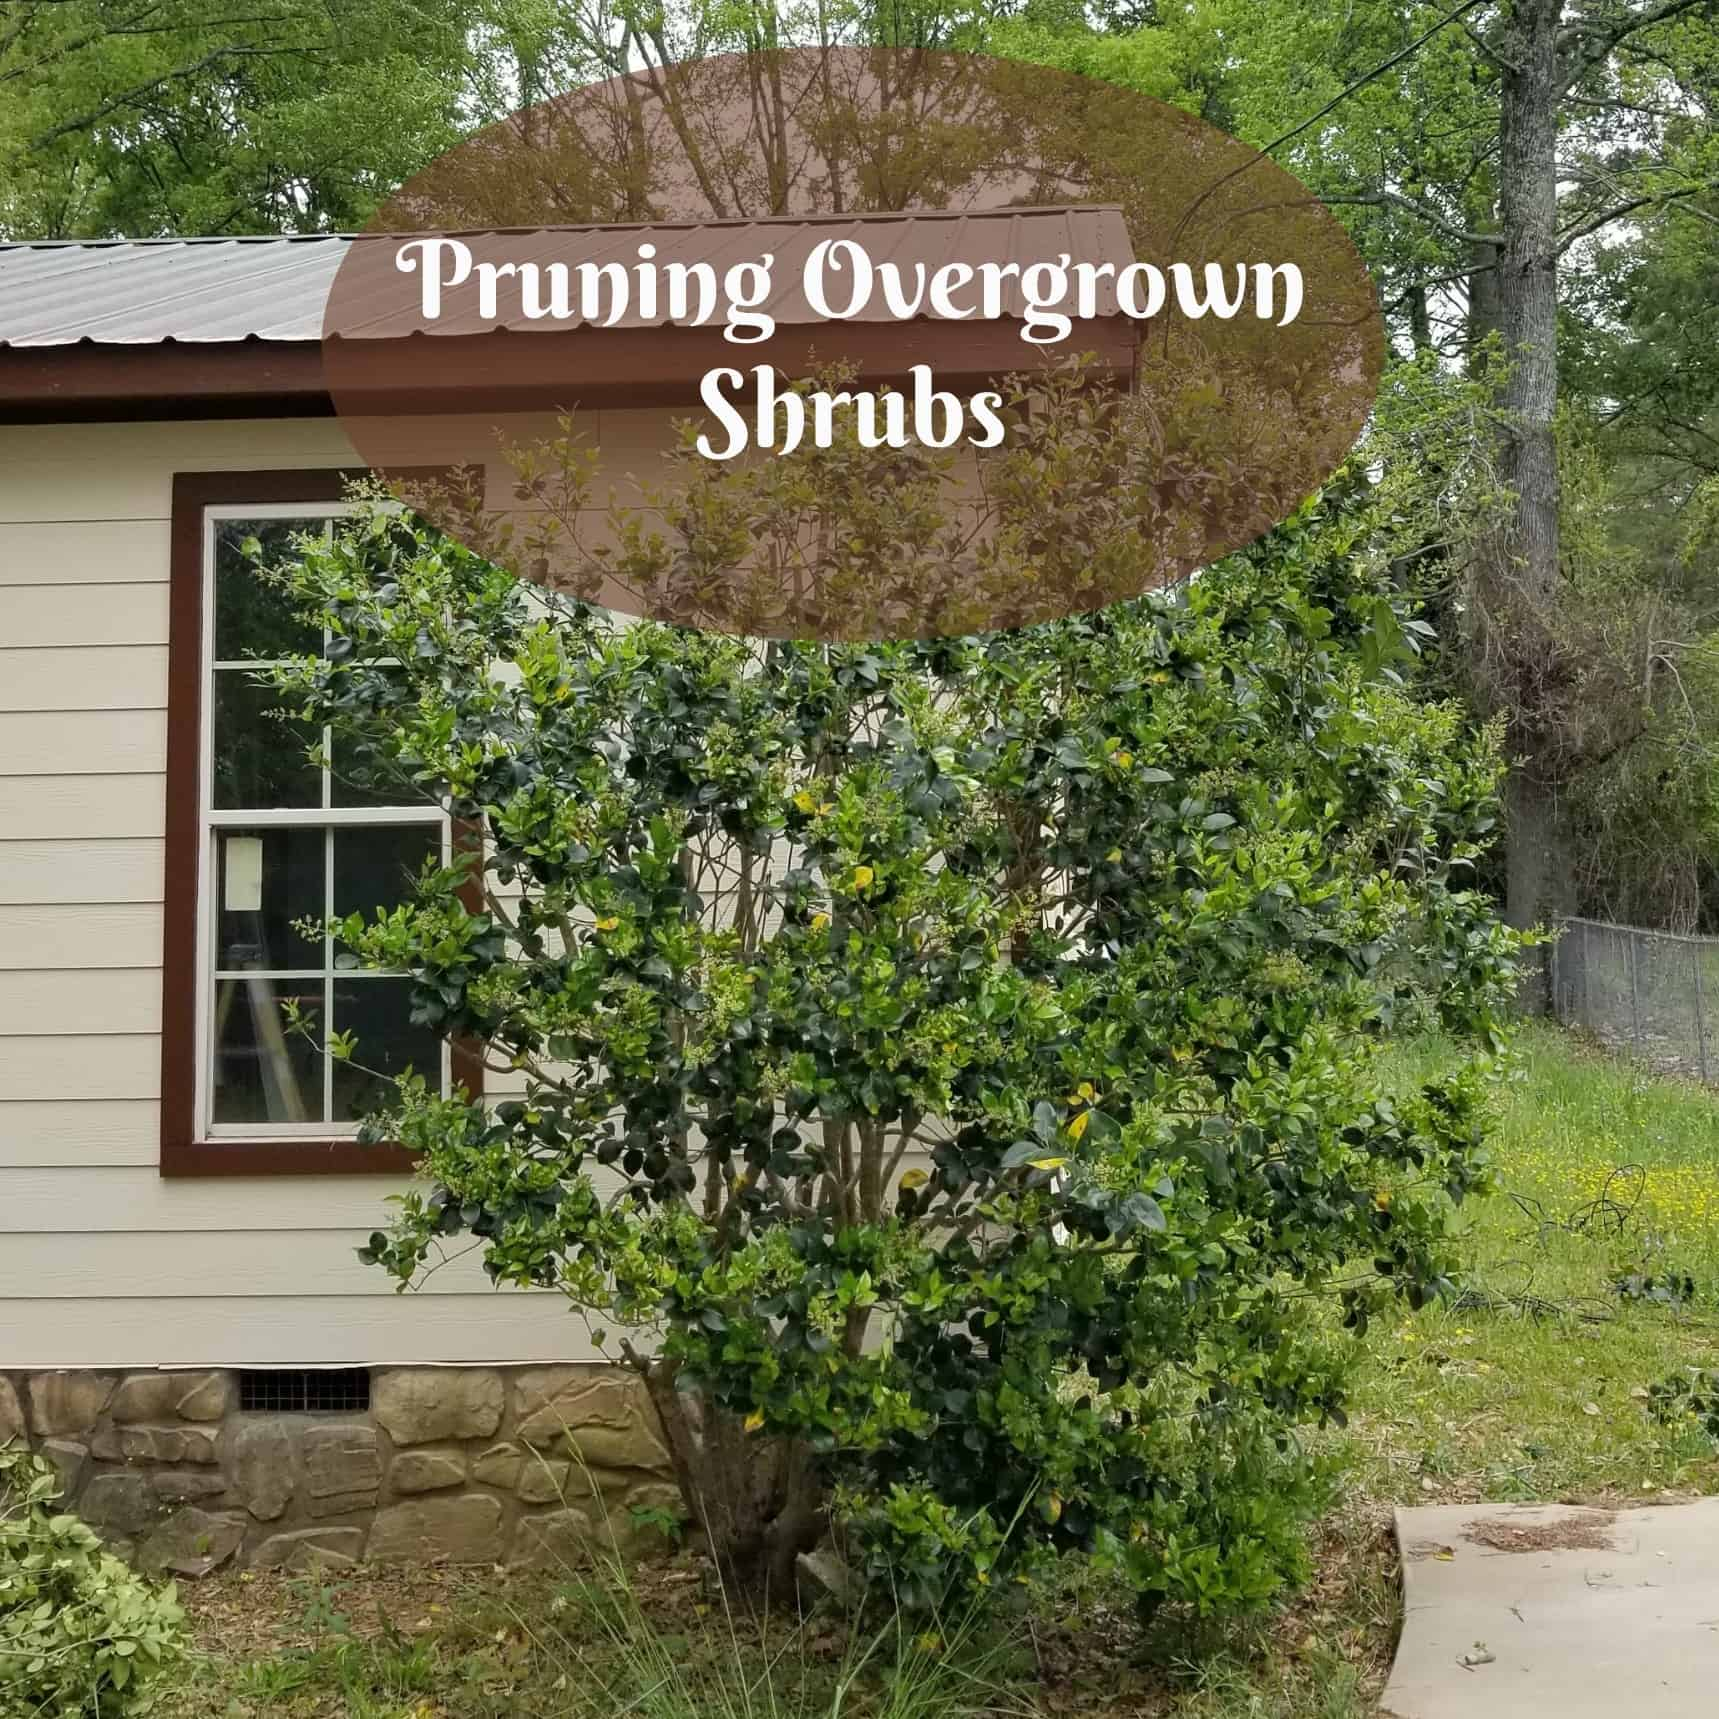 Pruning overgrown shrubs